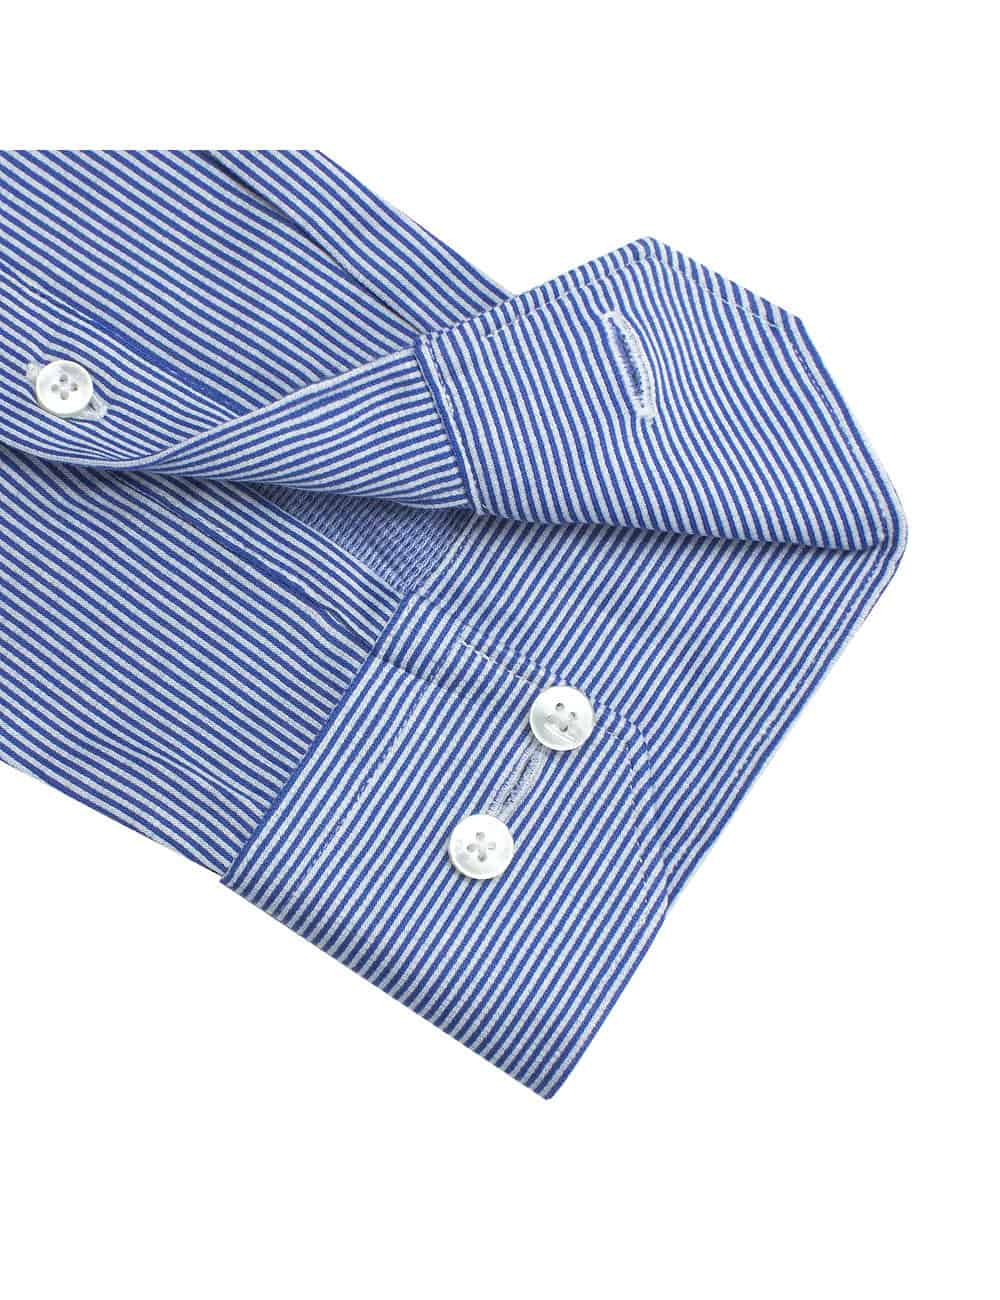 Blue and White Stripes Jetsetter Knitted Slim / Tailored Fit Long Sleeve Shirt – SF1AF5.18